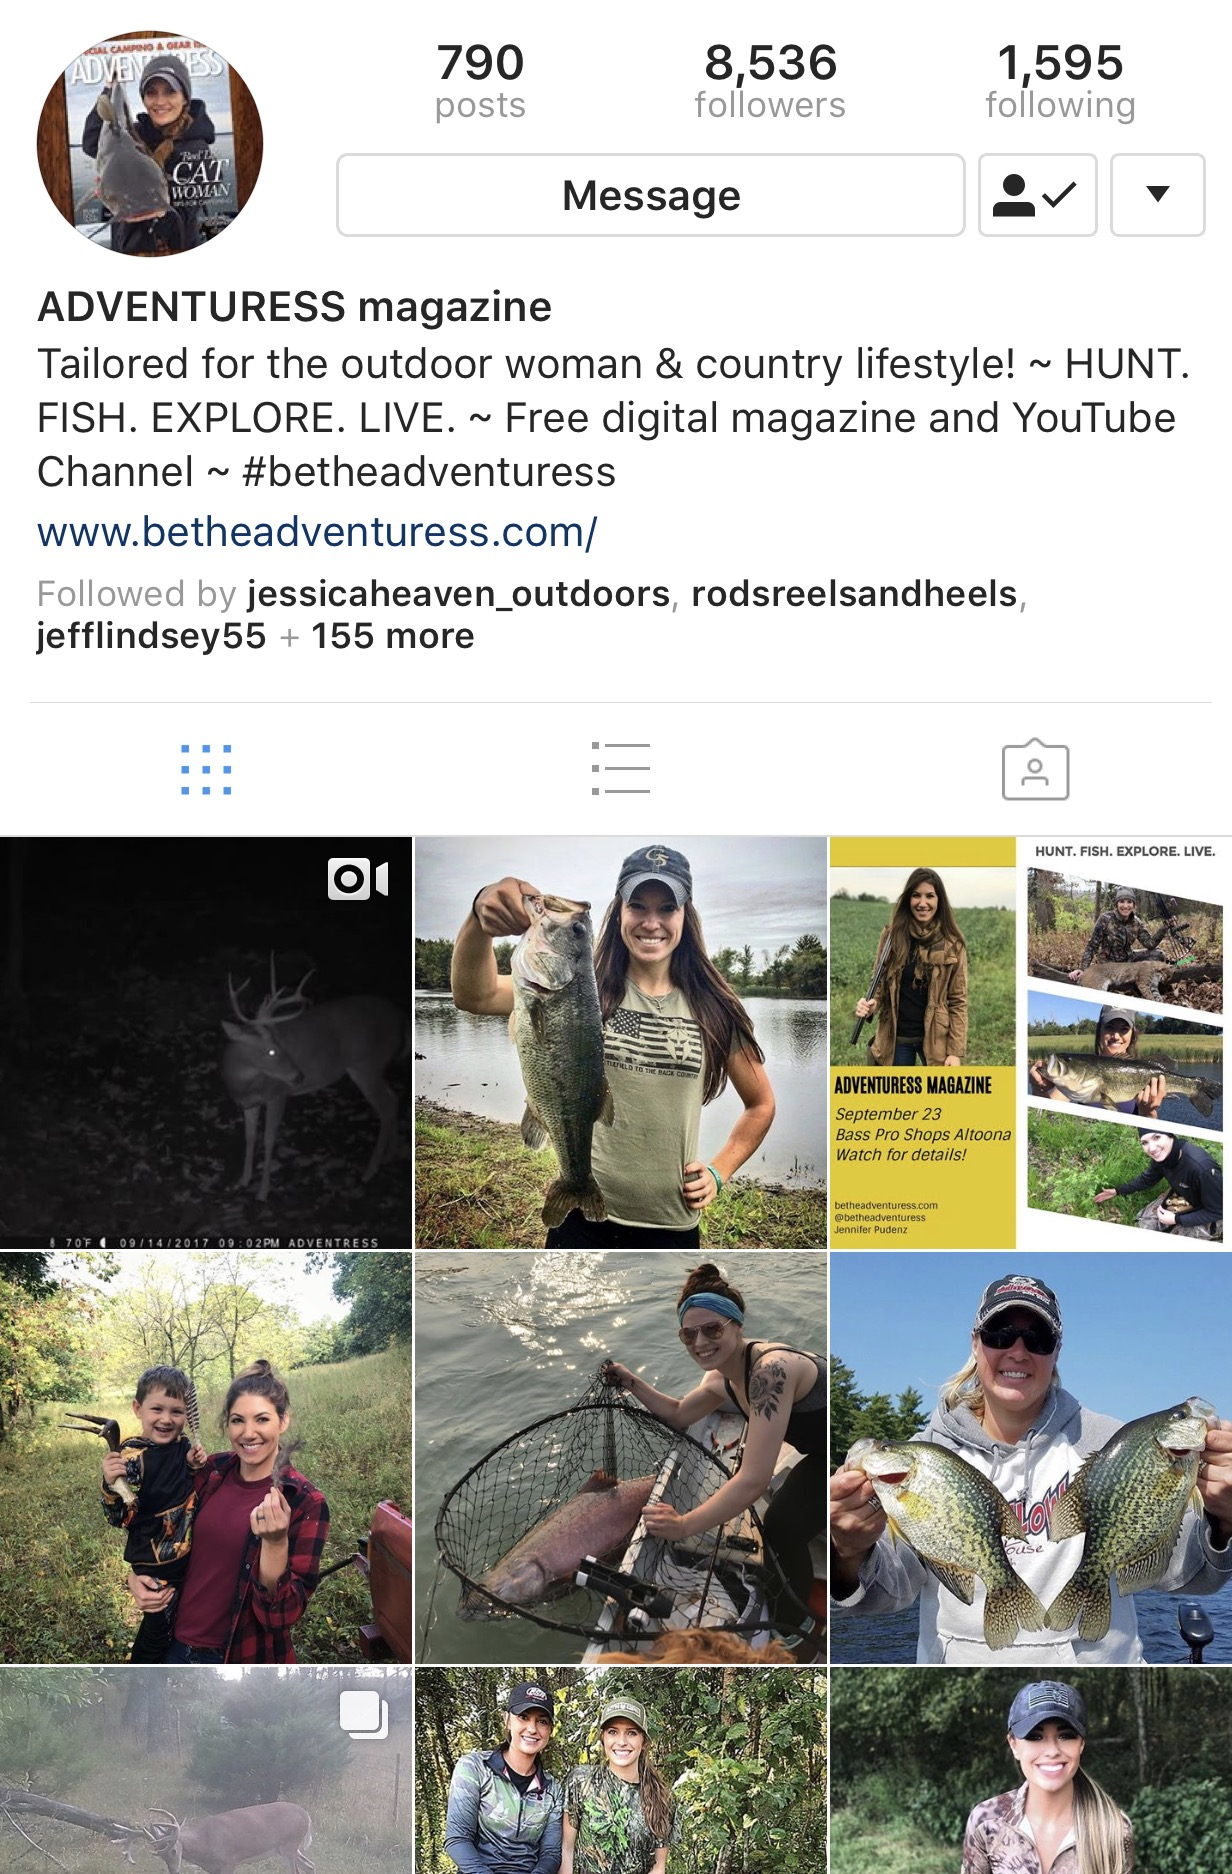 - ADVENTURESS is a free digital magazine tailored for the outdoor woman and country lifestyle. With articles written by and photos showcasing fellow outdoor women, it is intending to inspire women to try new things and inform them for greater skills in anything outdoors, including hunting, fishing, gathering, gardening and do-it-yourself projects ~ HUNT. FISH. EXPLORE. LIVE.Currently, ADVENTURESS is a quarterly magazine, releasing an issue each spring, summer, fall and winter. The magazine can be viewed from any digital device (computer, laptop, smartphone, tablet) as well as downloaded as a PDF for personal storage and offline viewing. Past articles can be found in blog format and searchable on the website.